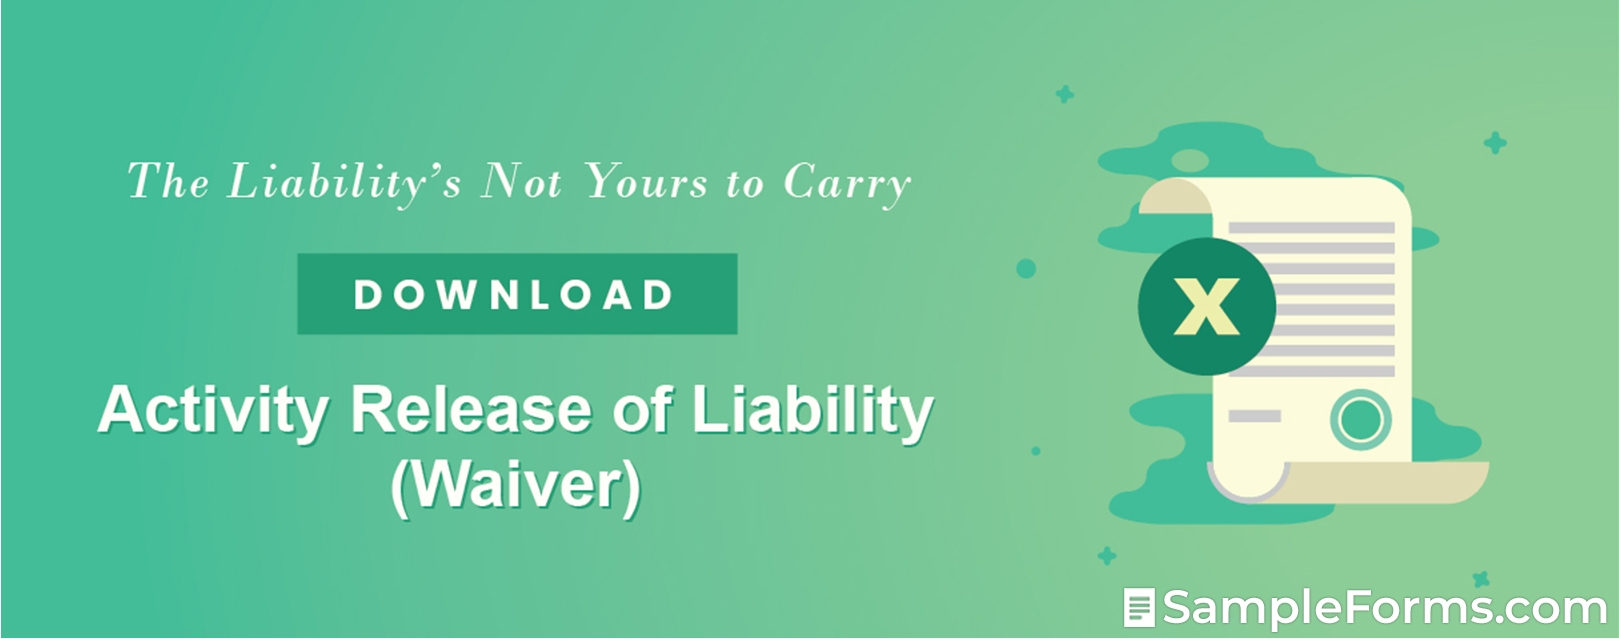 Activity Release of Liability Waiver